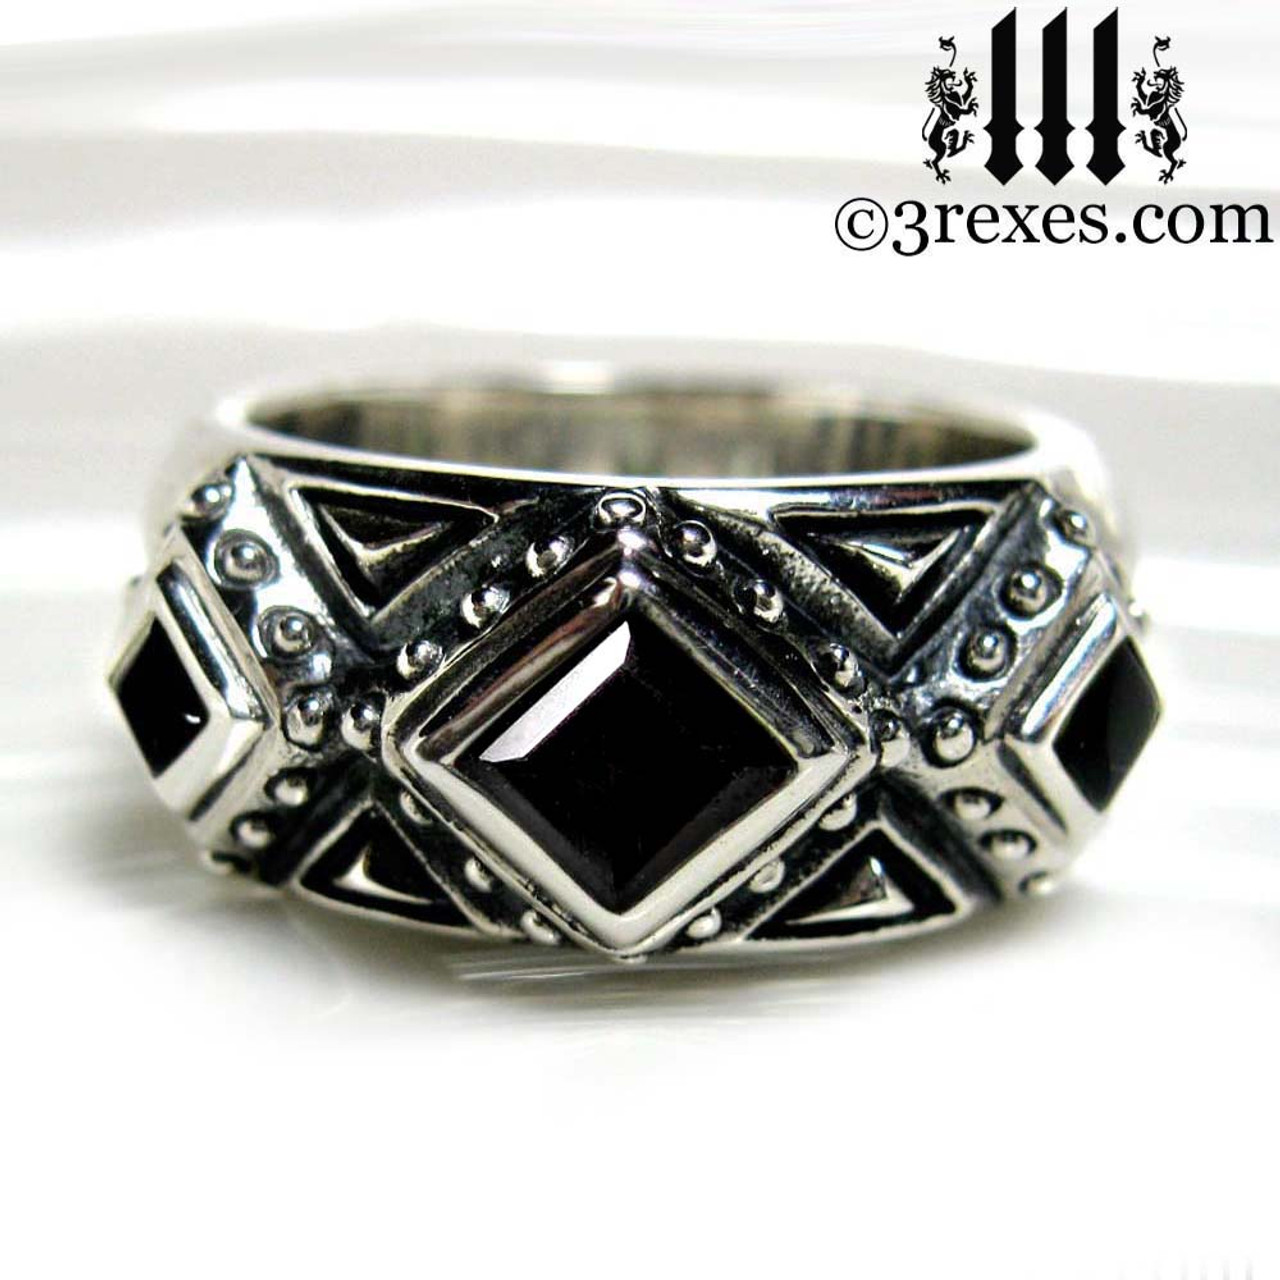 mens gothic ring, silver wedding band with black stones